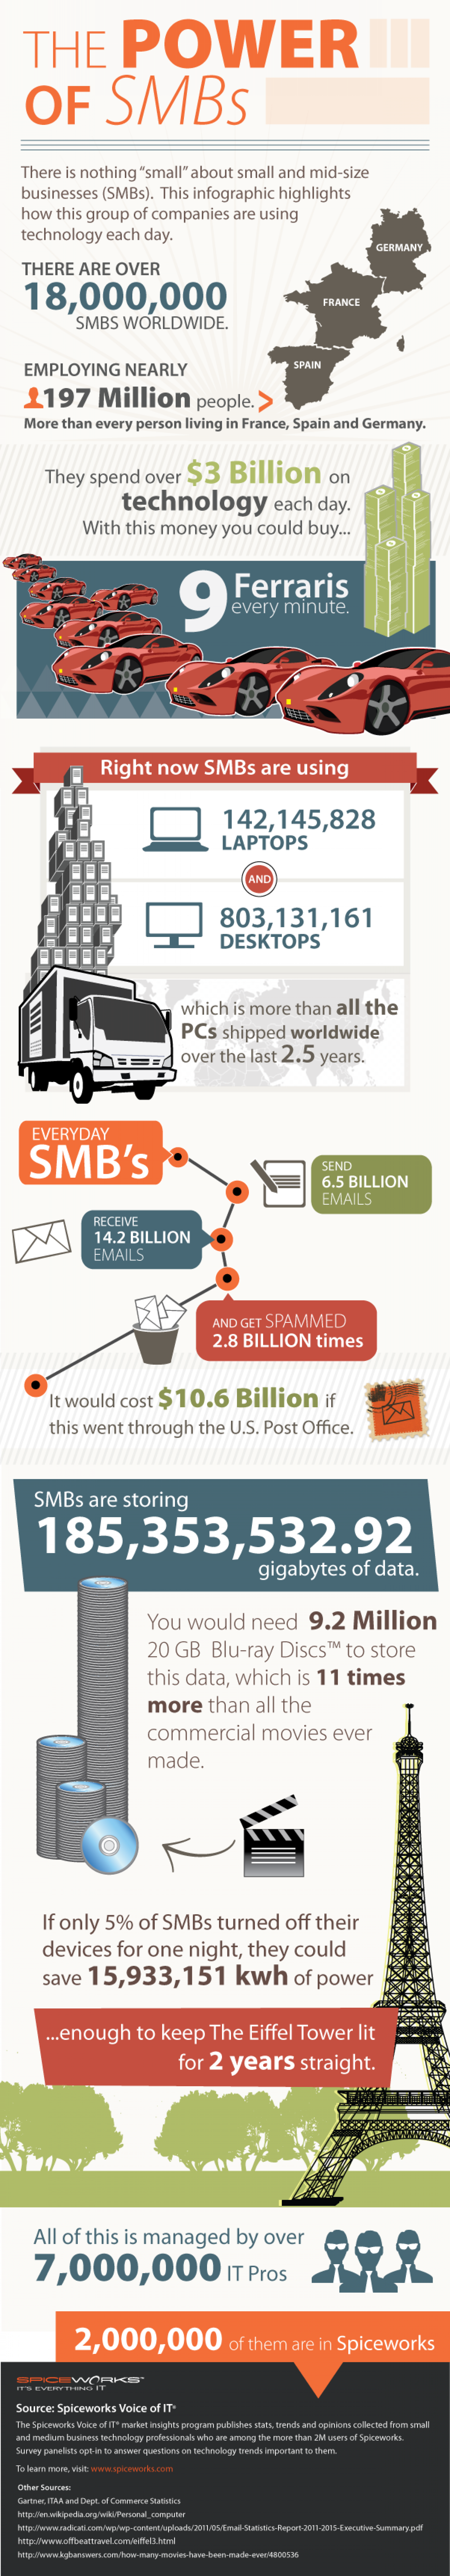 The Power of SMBs Infographic